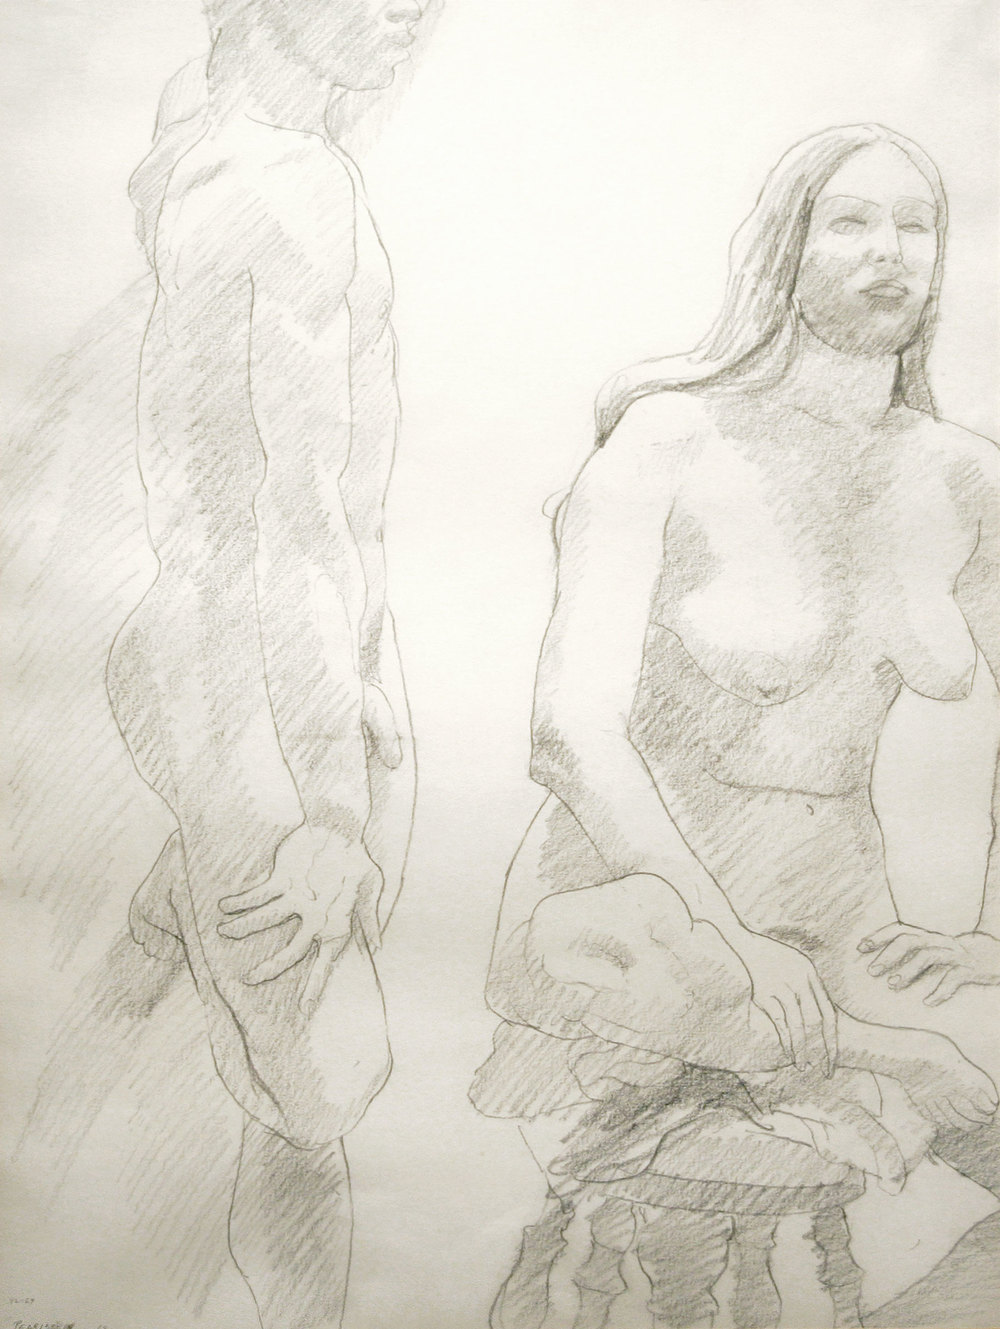 UNTITLED , 1968 Pencil on paper 23 1/2 x 17 1/2 inches